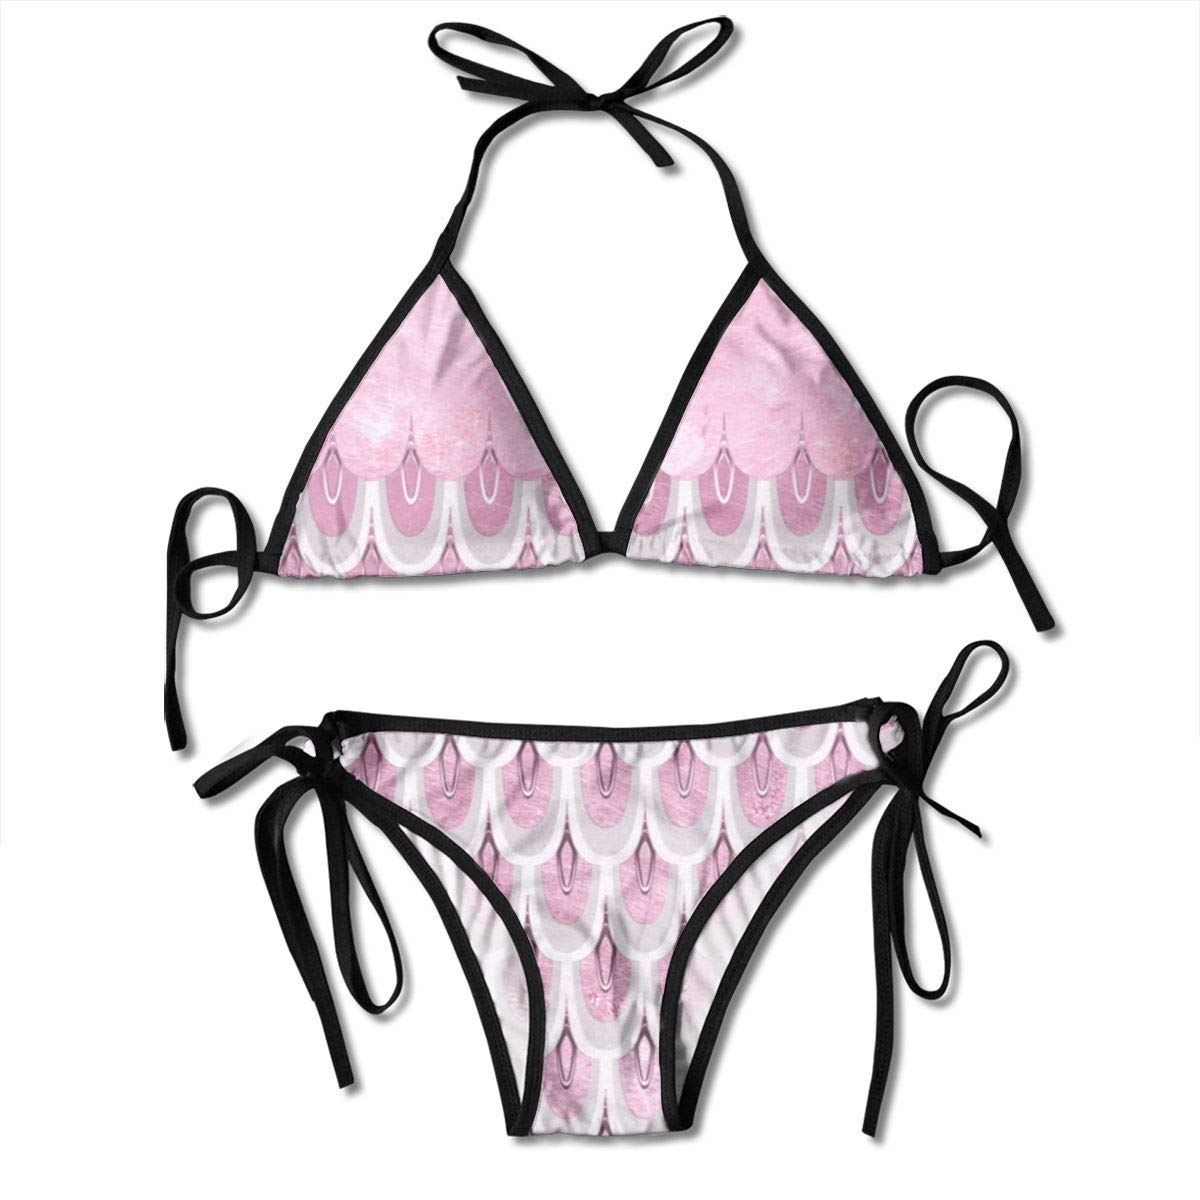 4c8face0f7c5d Pink Key Fish Mermaid Fish Scales Women Sexy Two Piece Swimsuit Tie Side Bikini  Swimsuit Bathing Suit One Size at Amazon Women's Clothing store: